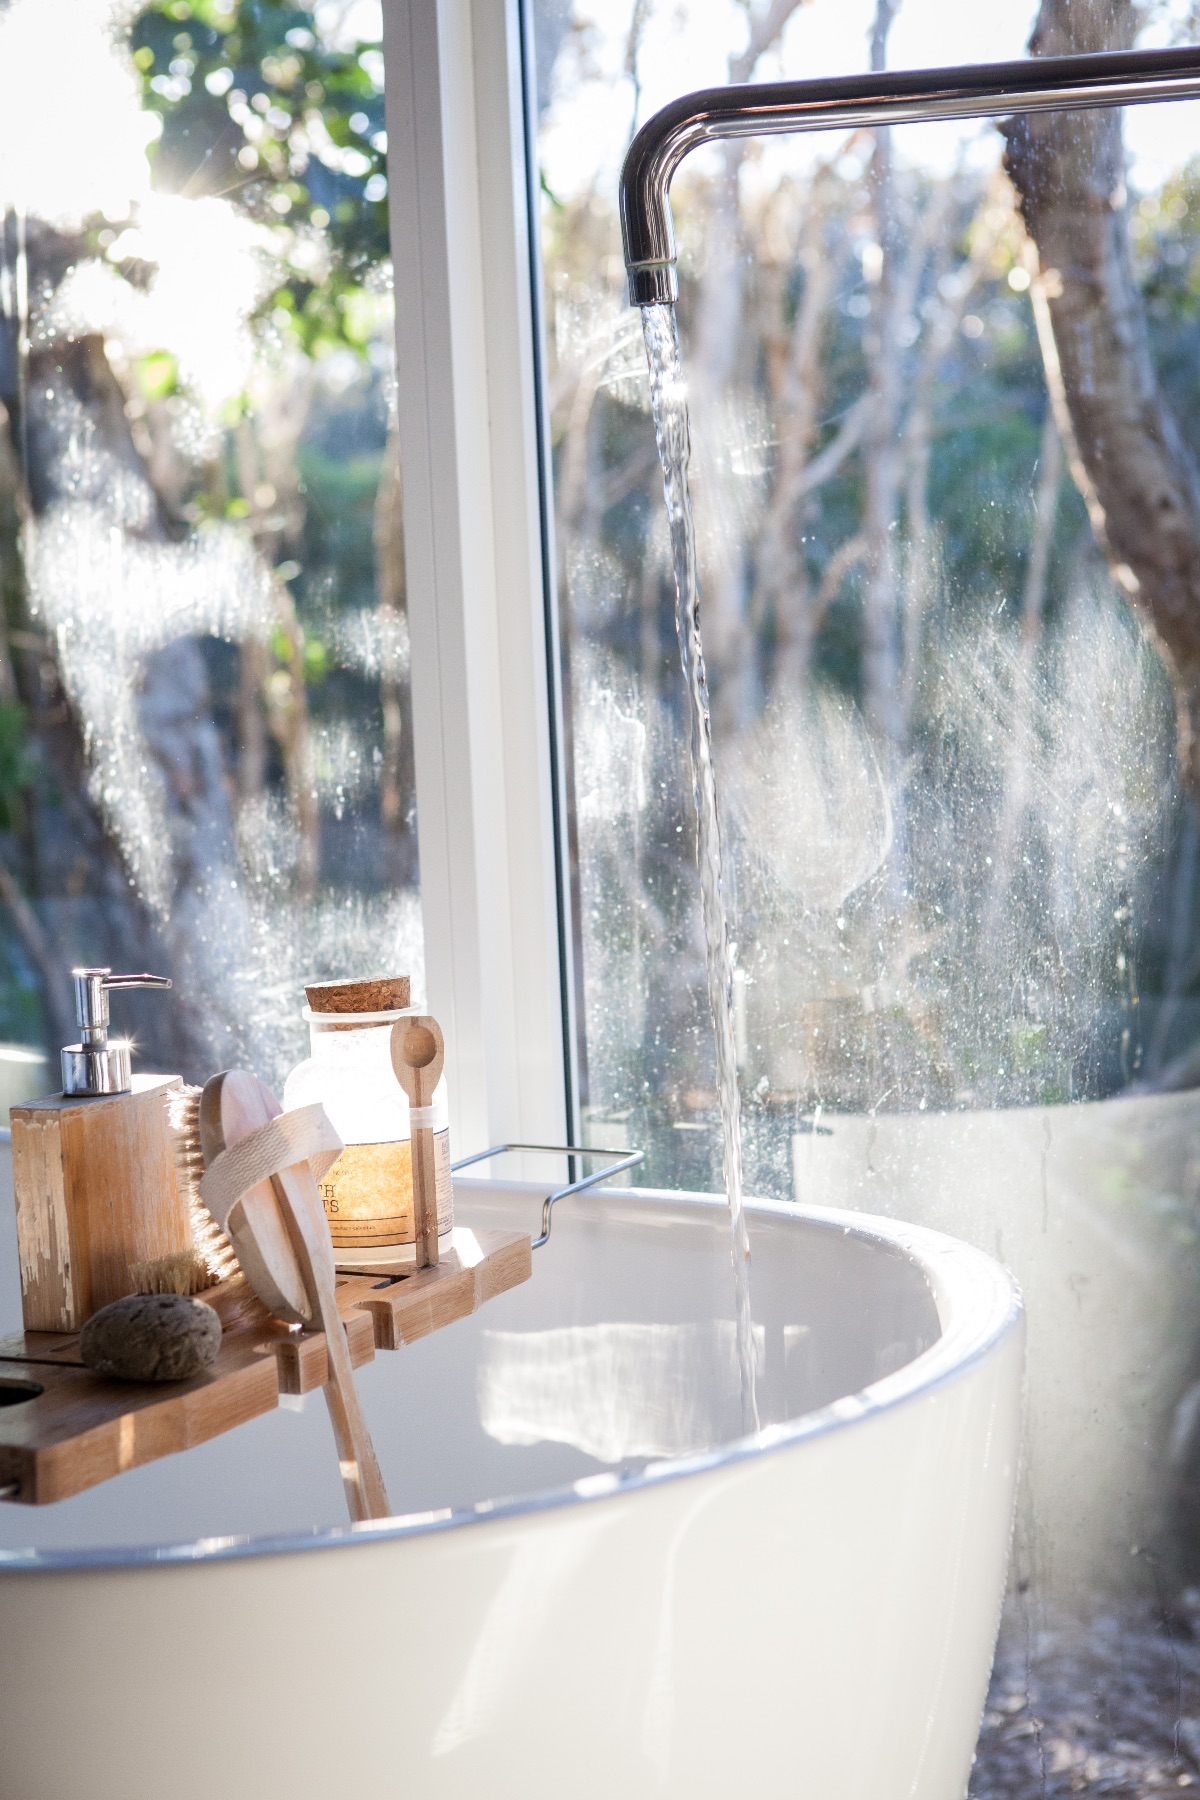 Essential Oil Bath Safety: What To Do & Not Do | Herbal Academy | If a warm bath with essential oils helps you destress at the end of the day, here are some essential oil bath safety tips to keep you safe while you relax.